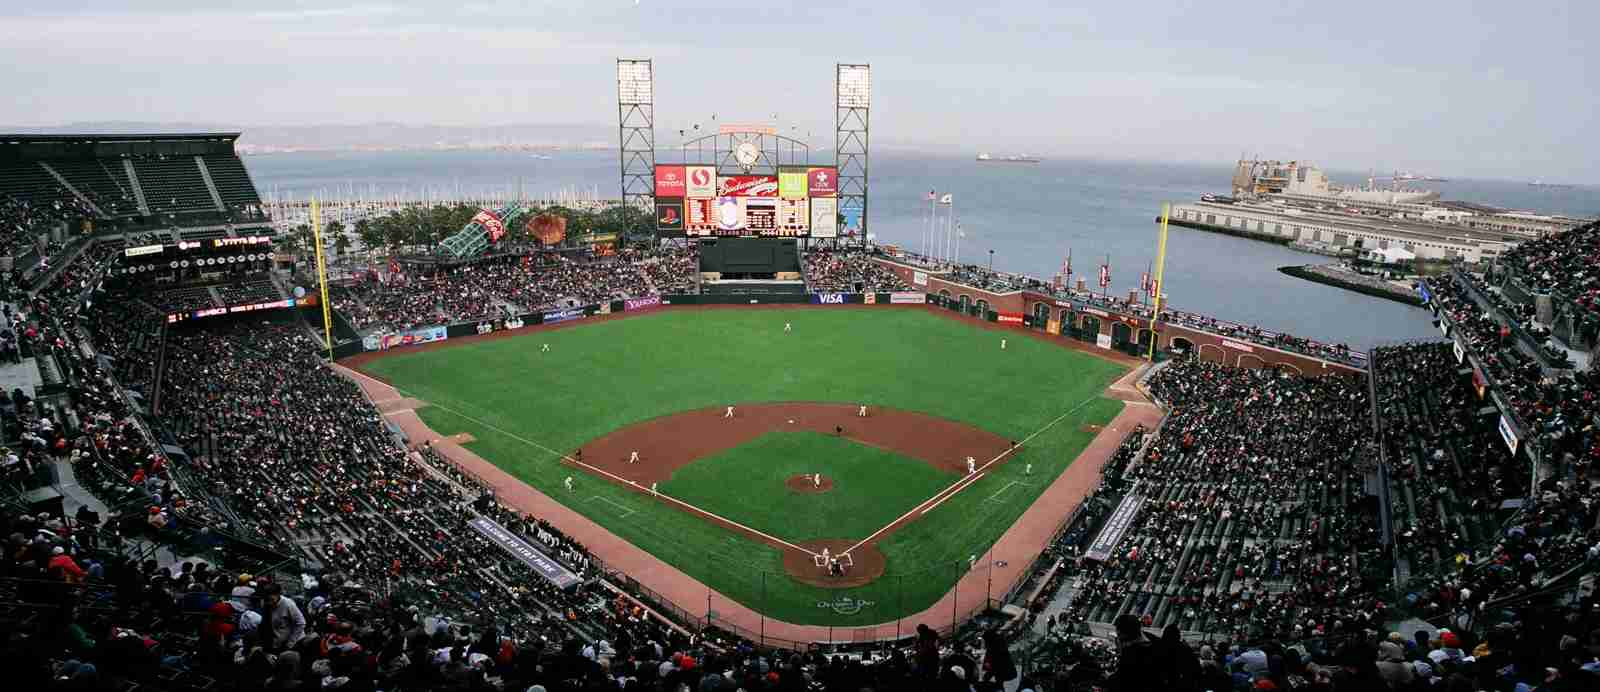 Oracle Park, formerly known as AT&T Park. (Photo by Bspangenberg / Wikipedia)